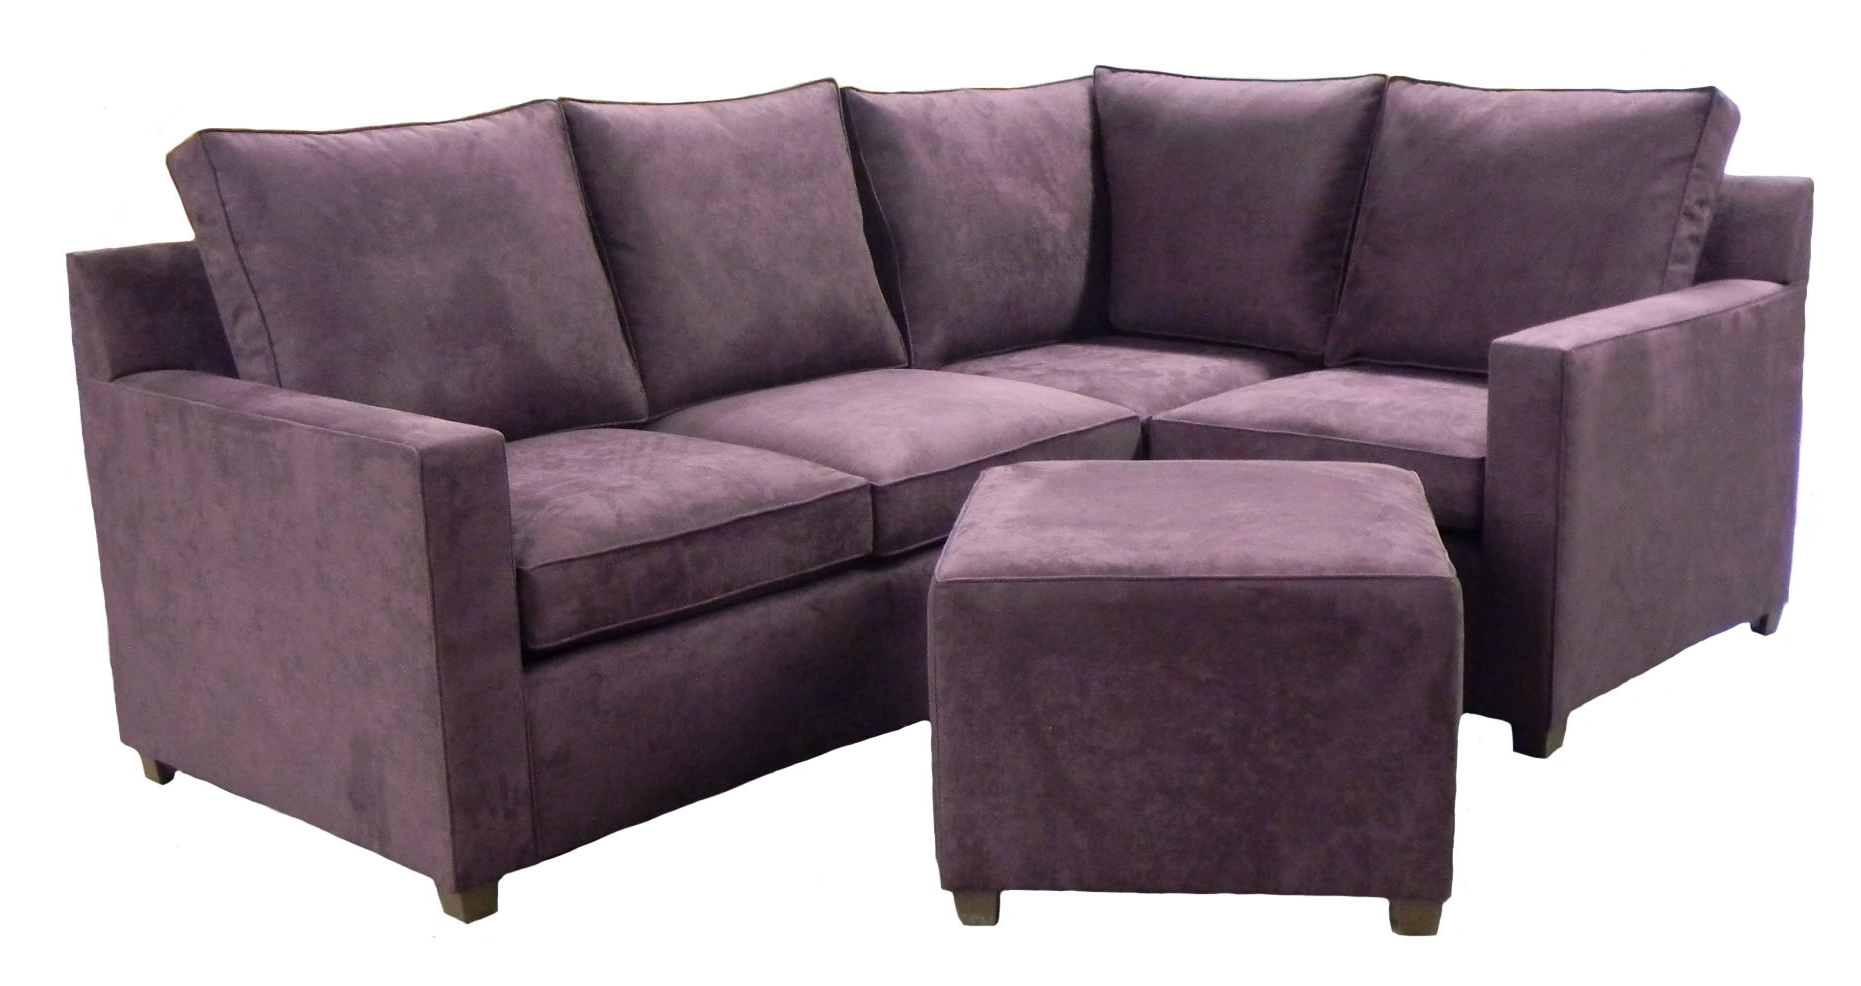 20 Best Sectional Sofas By Size